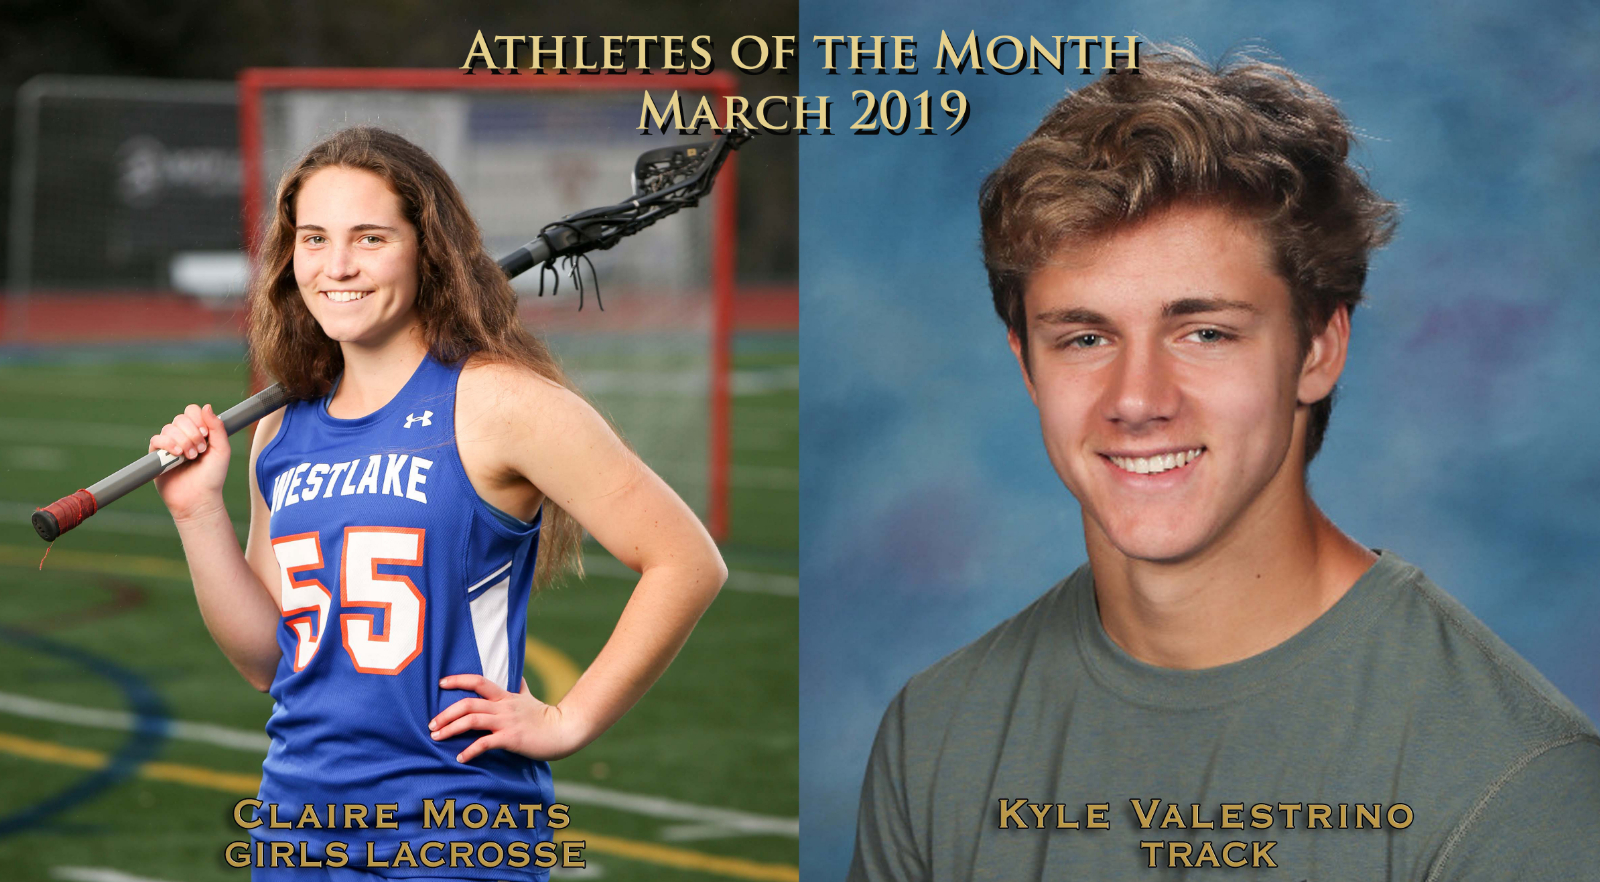 Moats, Valestrino Earn Athlete of the Month Honors for March